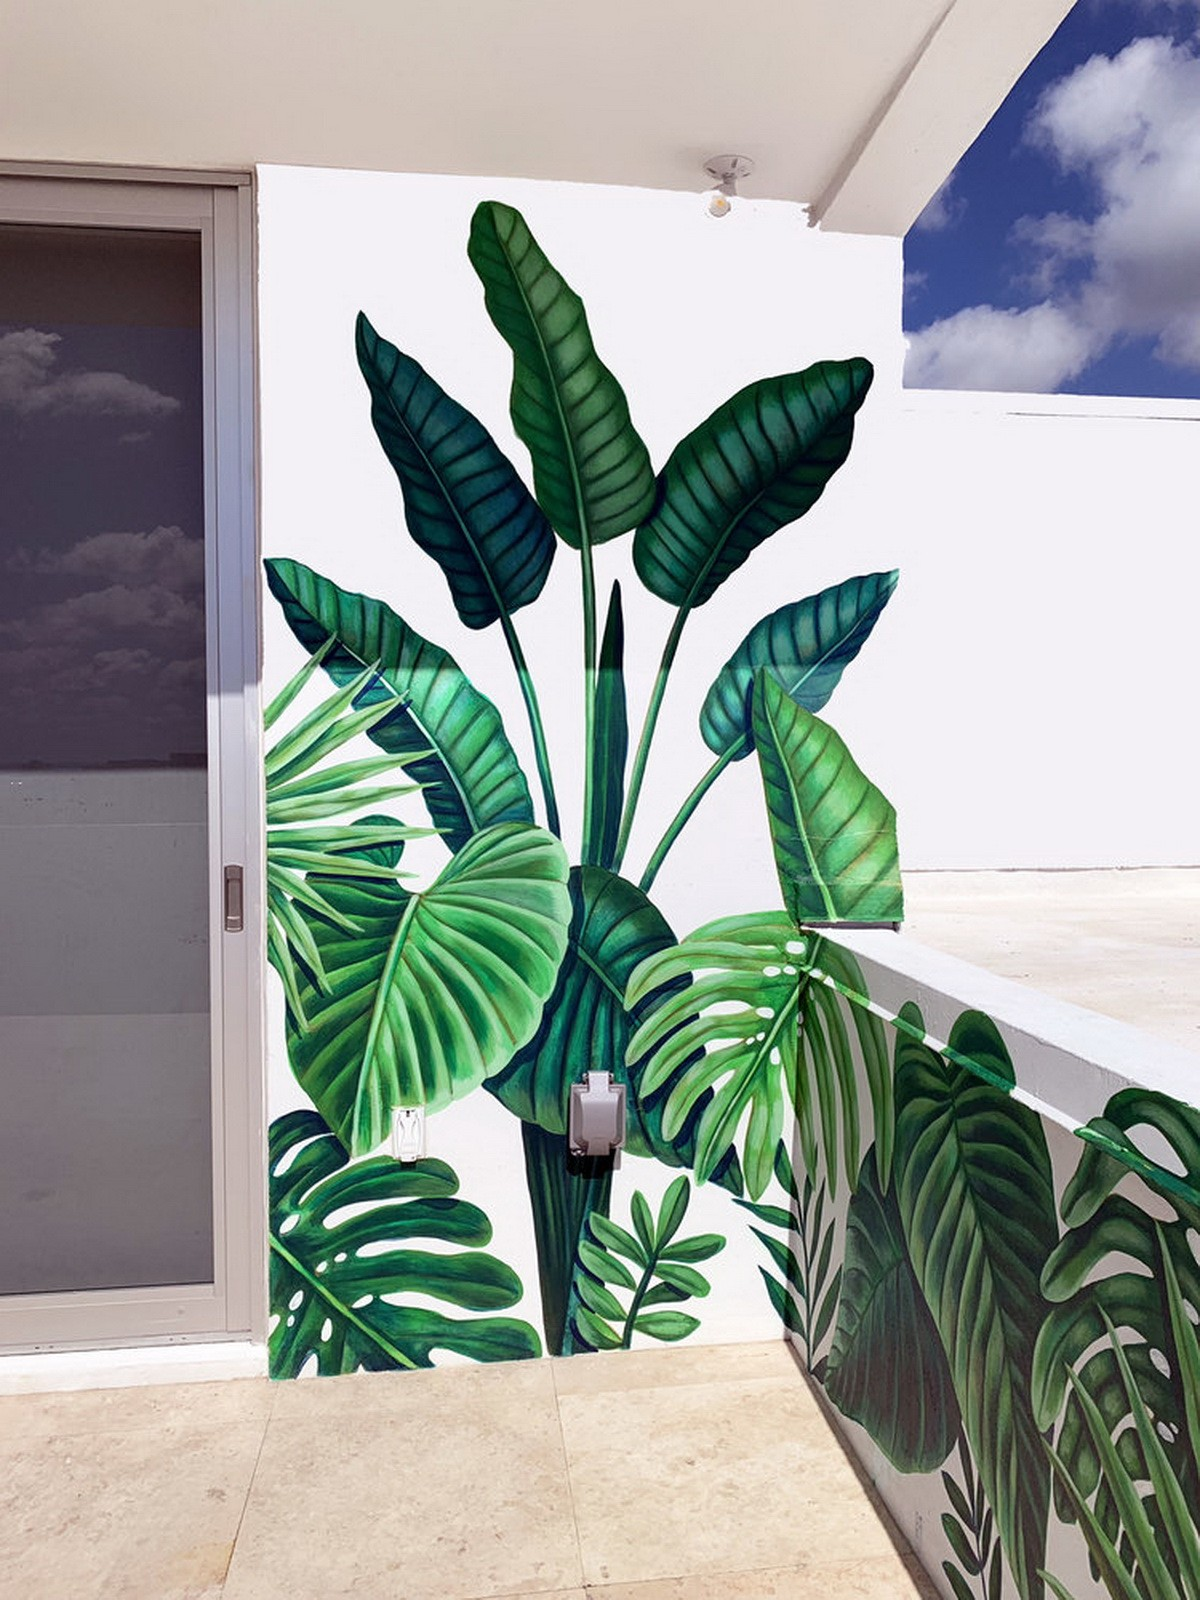 Floral Mural in the Balcony of Penthouse